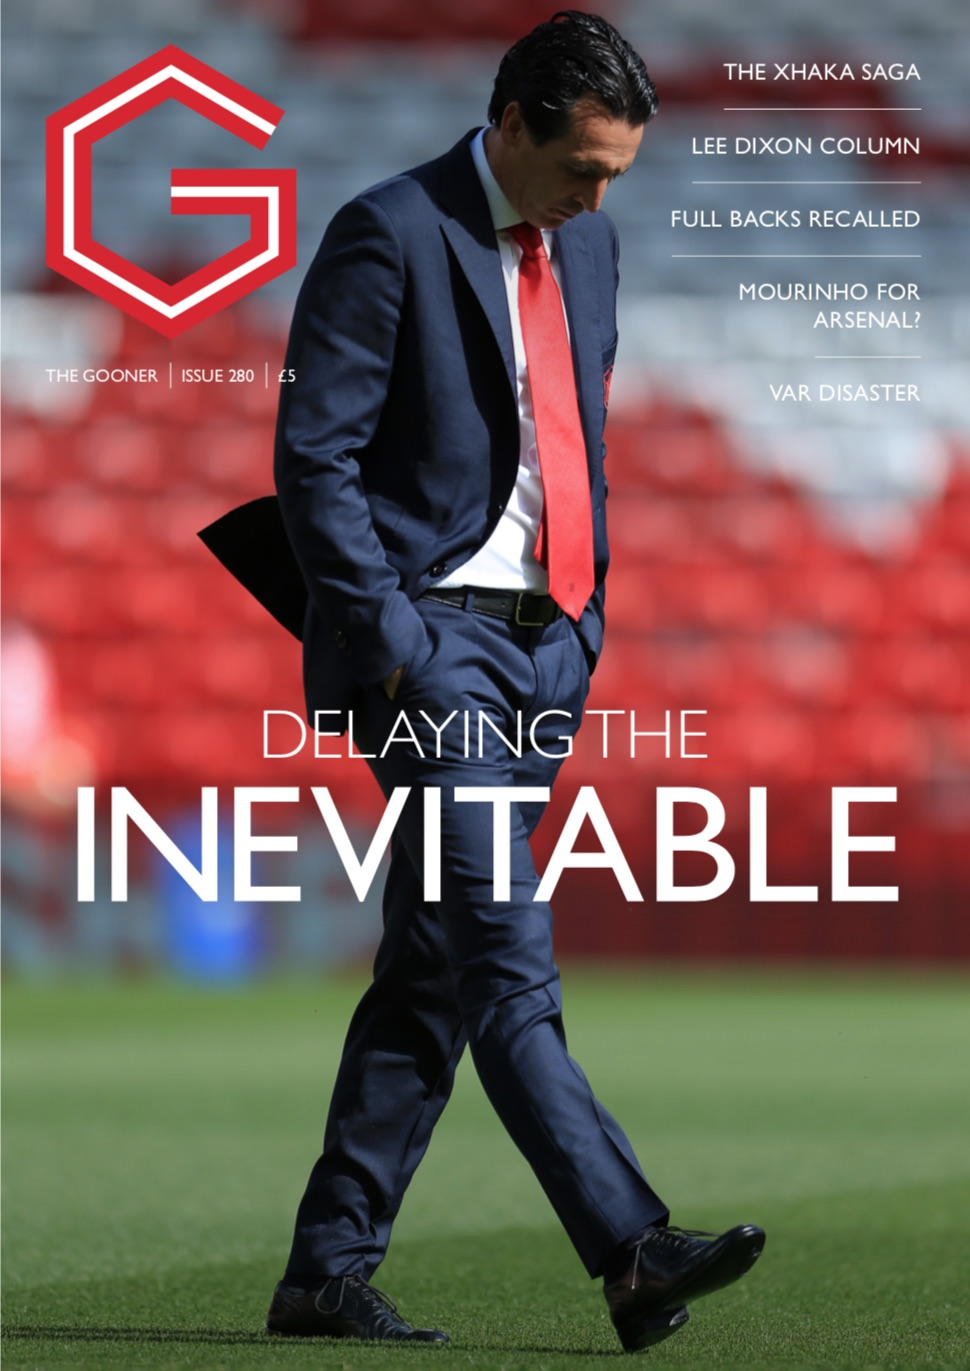 The Gooner Issue 280 (Overseas)